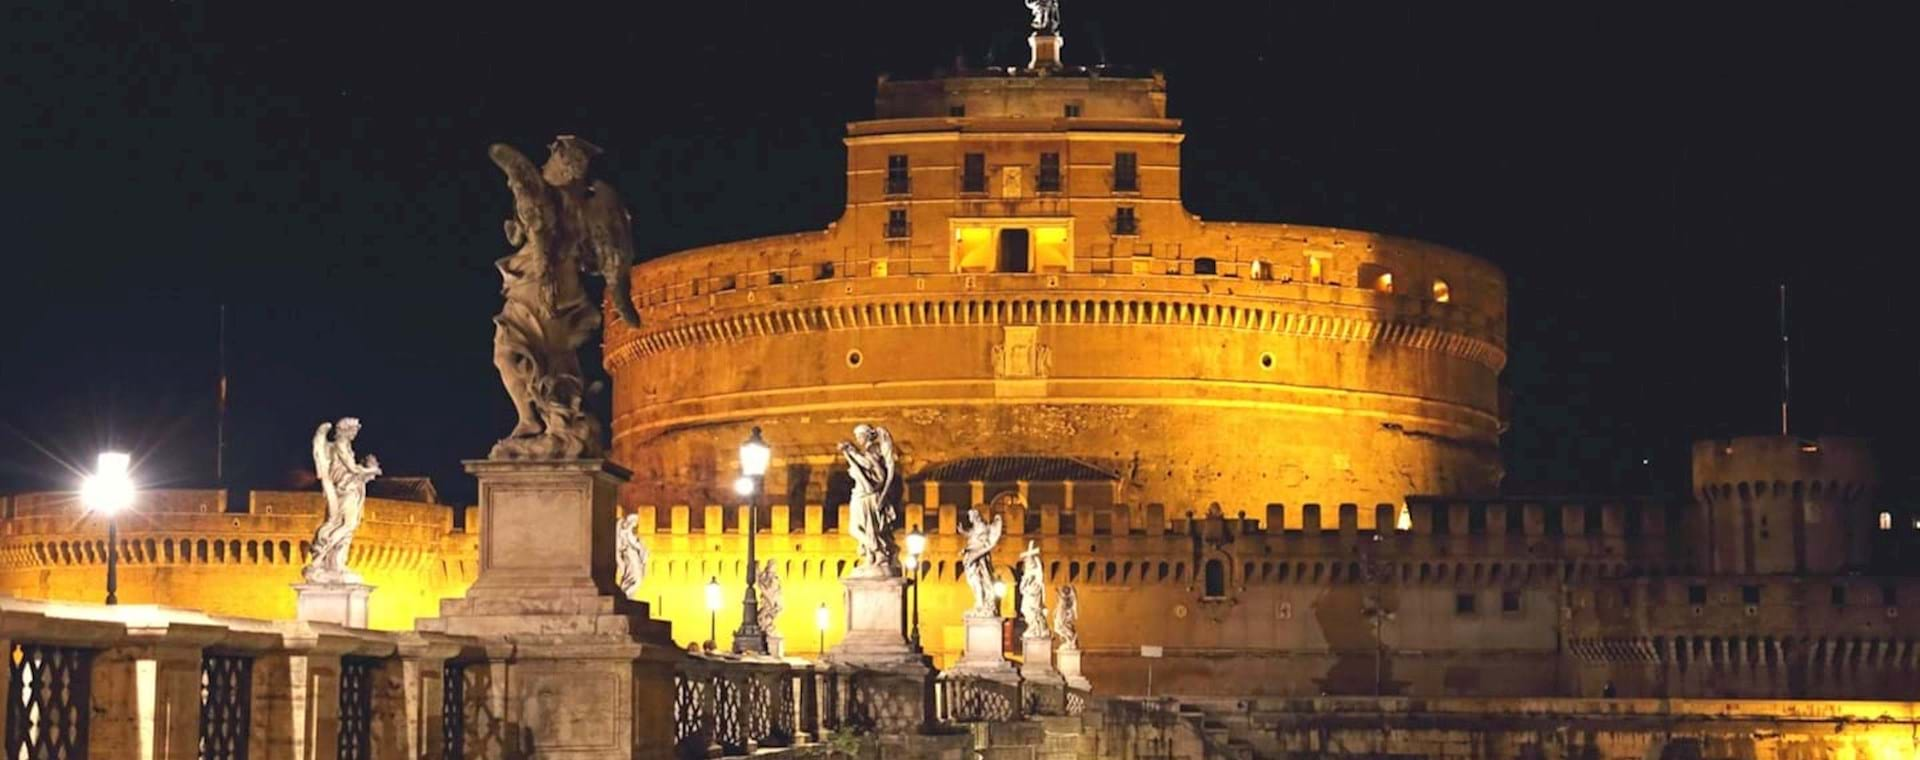 Full-Day Combo: Crypts & Catacombs and Legends & Ghosts of Rome Tour